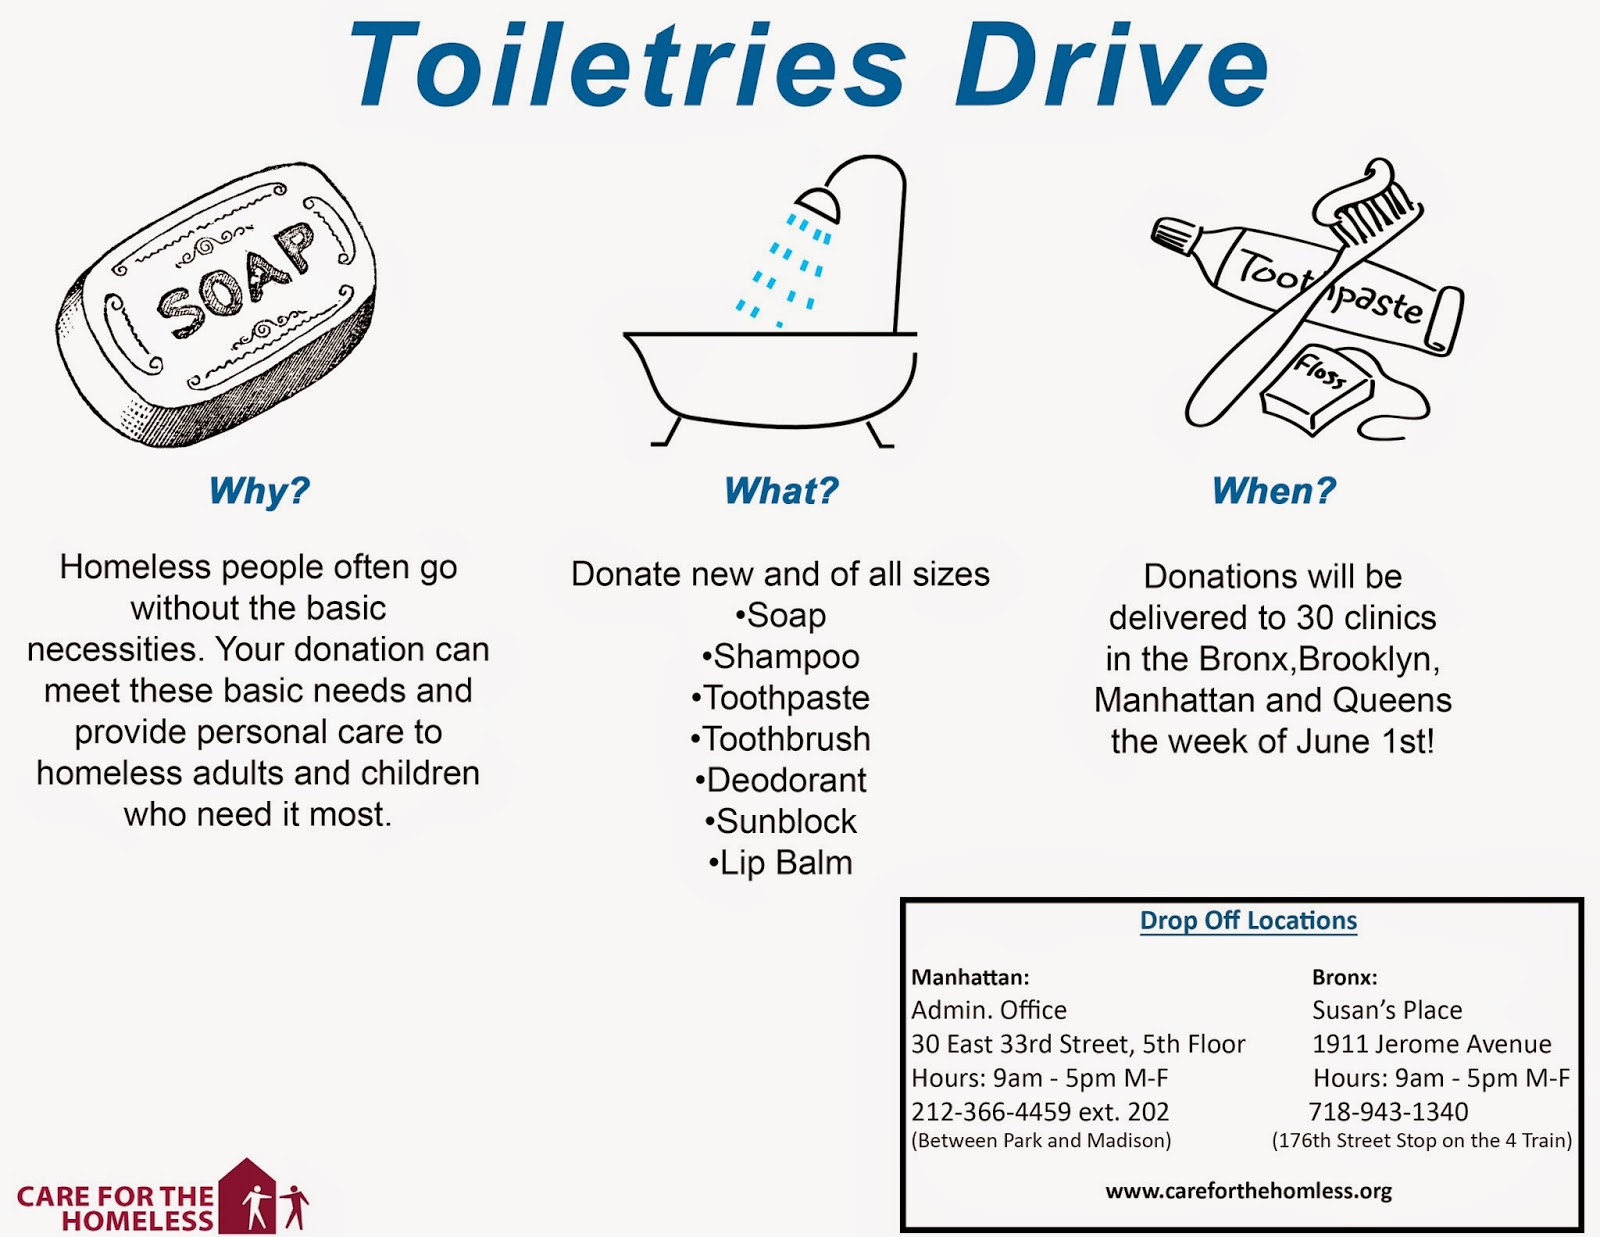 What Do You Do With Unused Toiletries